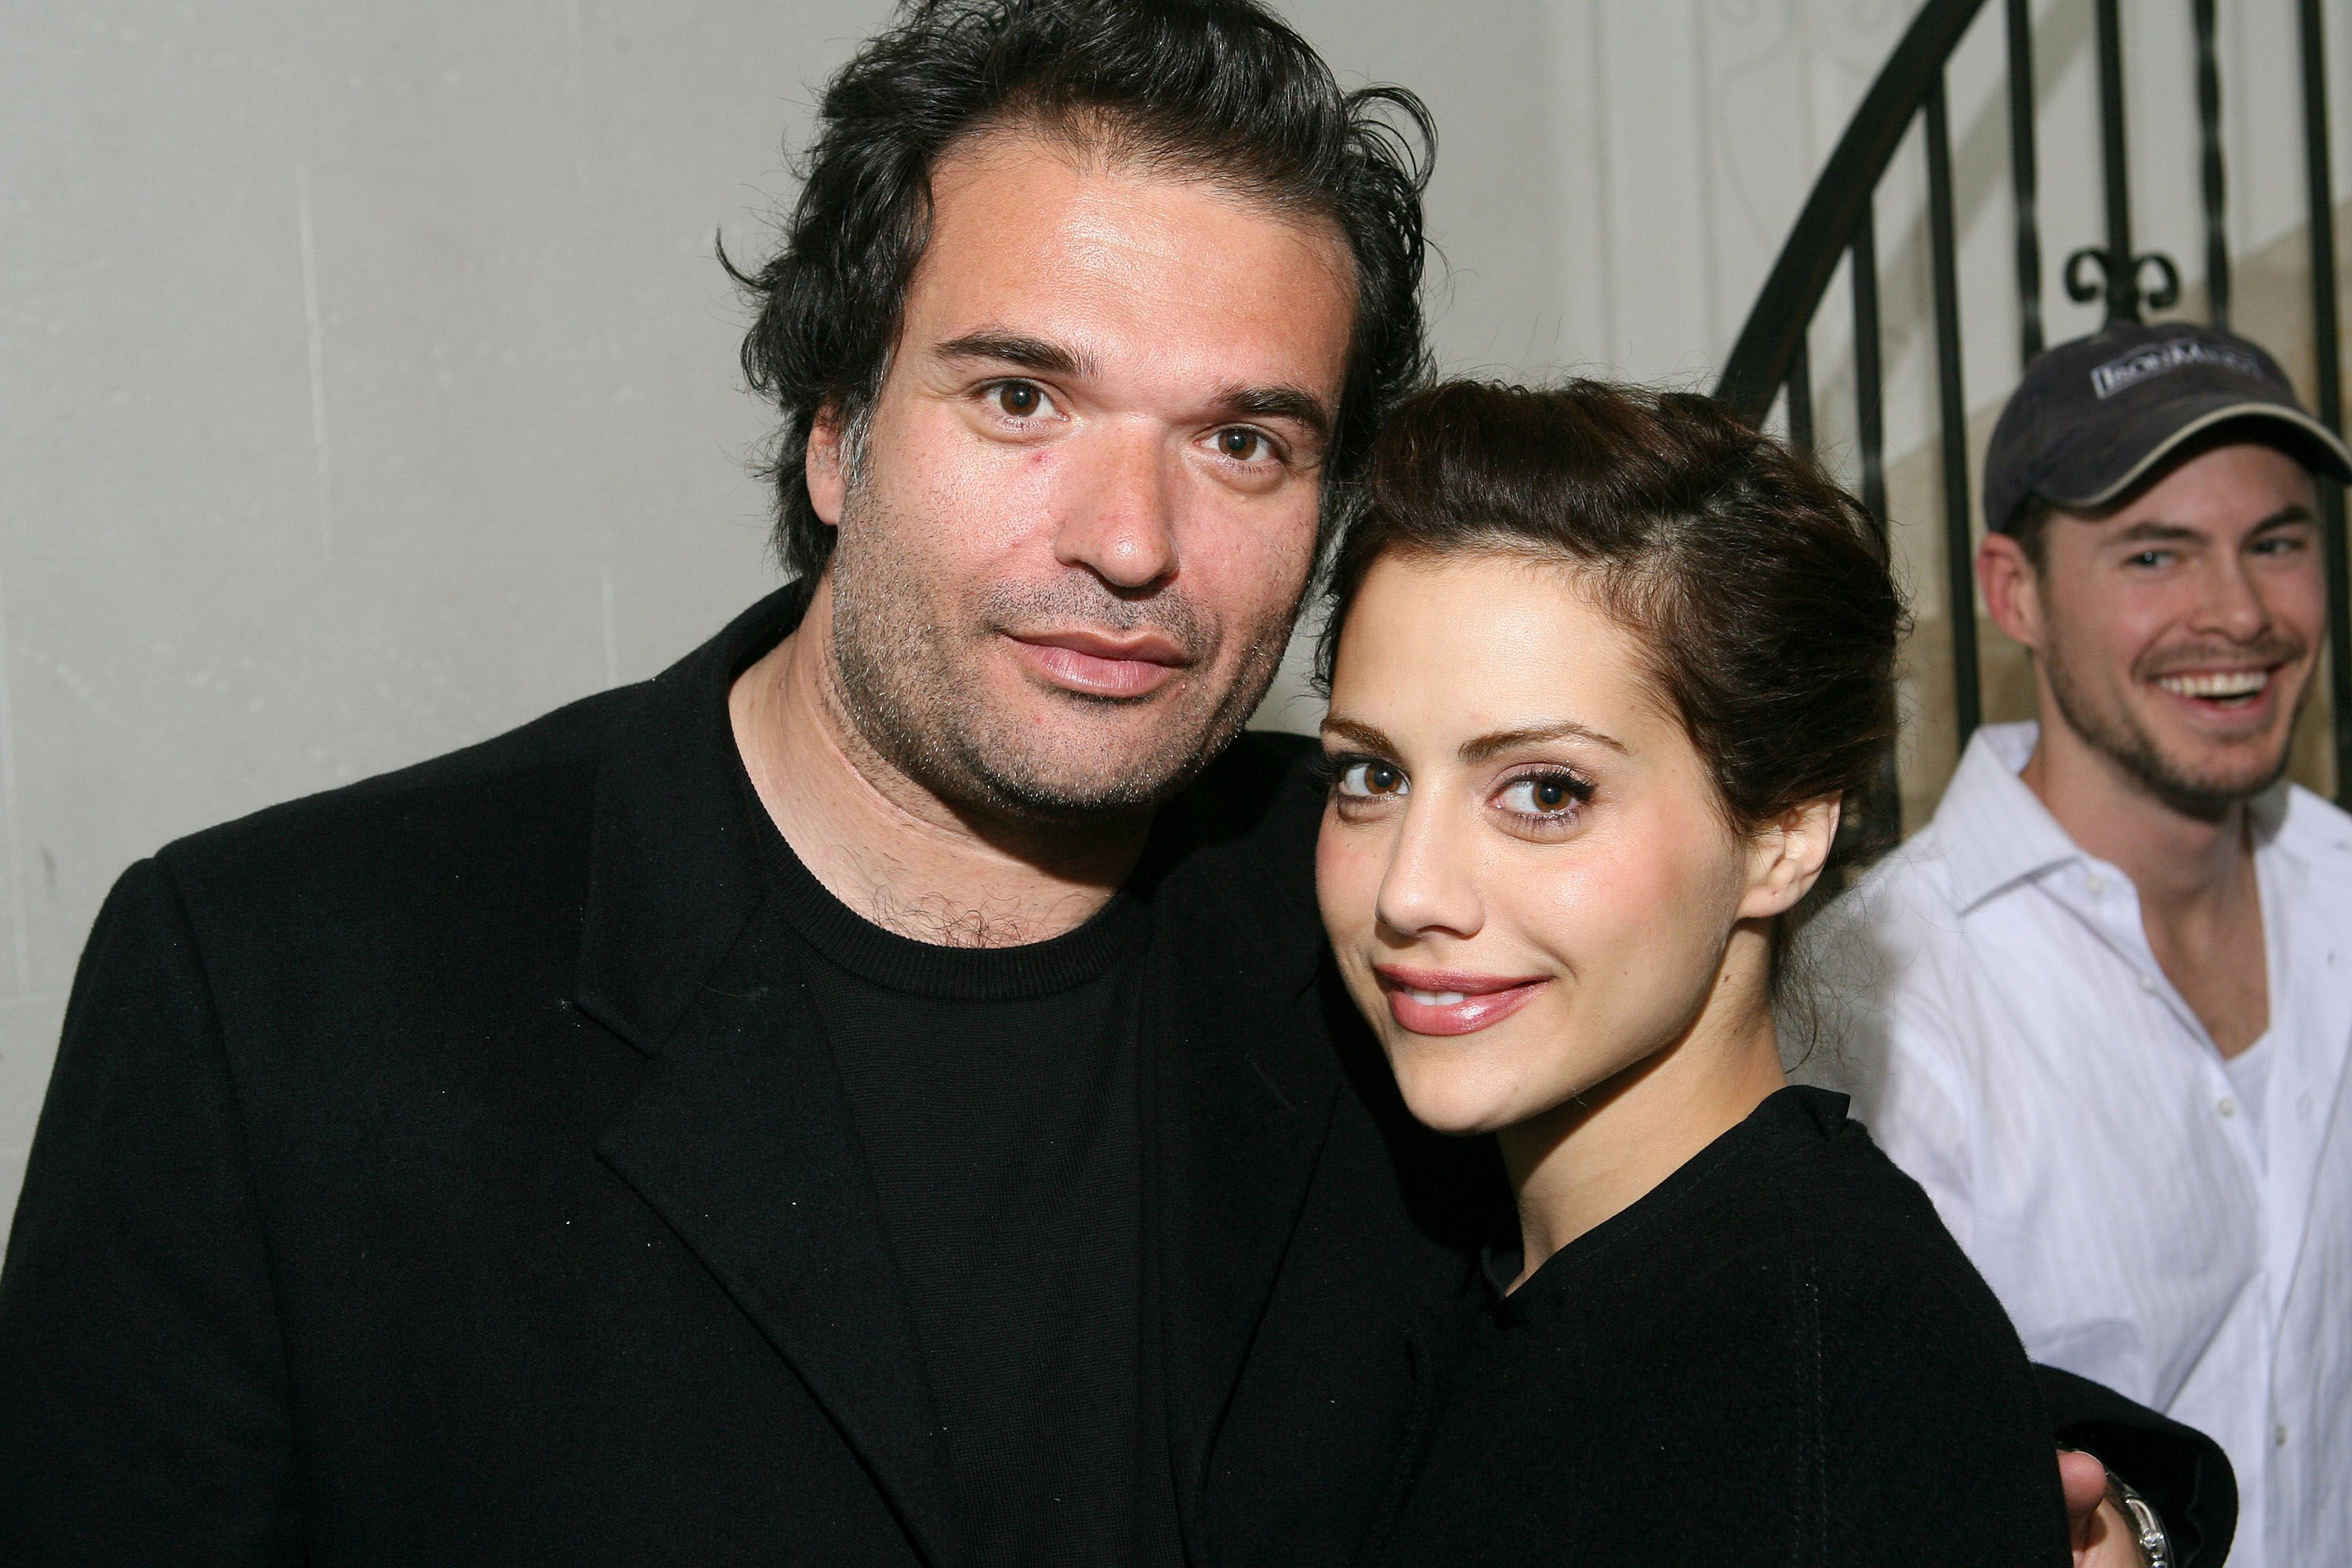 Actress Brittany Murphy posing with husband Simon Monjack   Photo: Michael Bezjian/WireImage via Getty Images